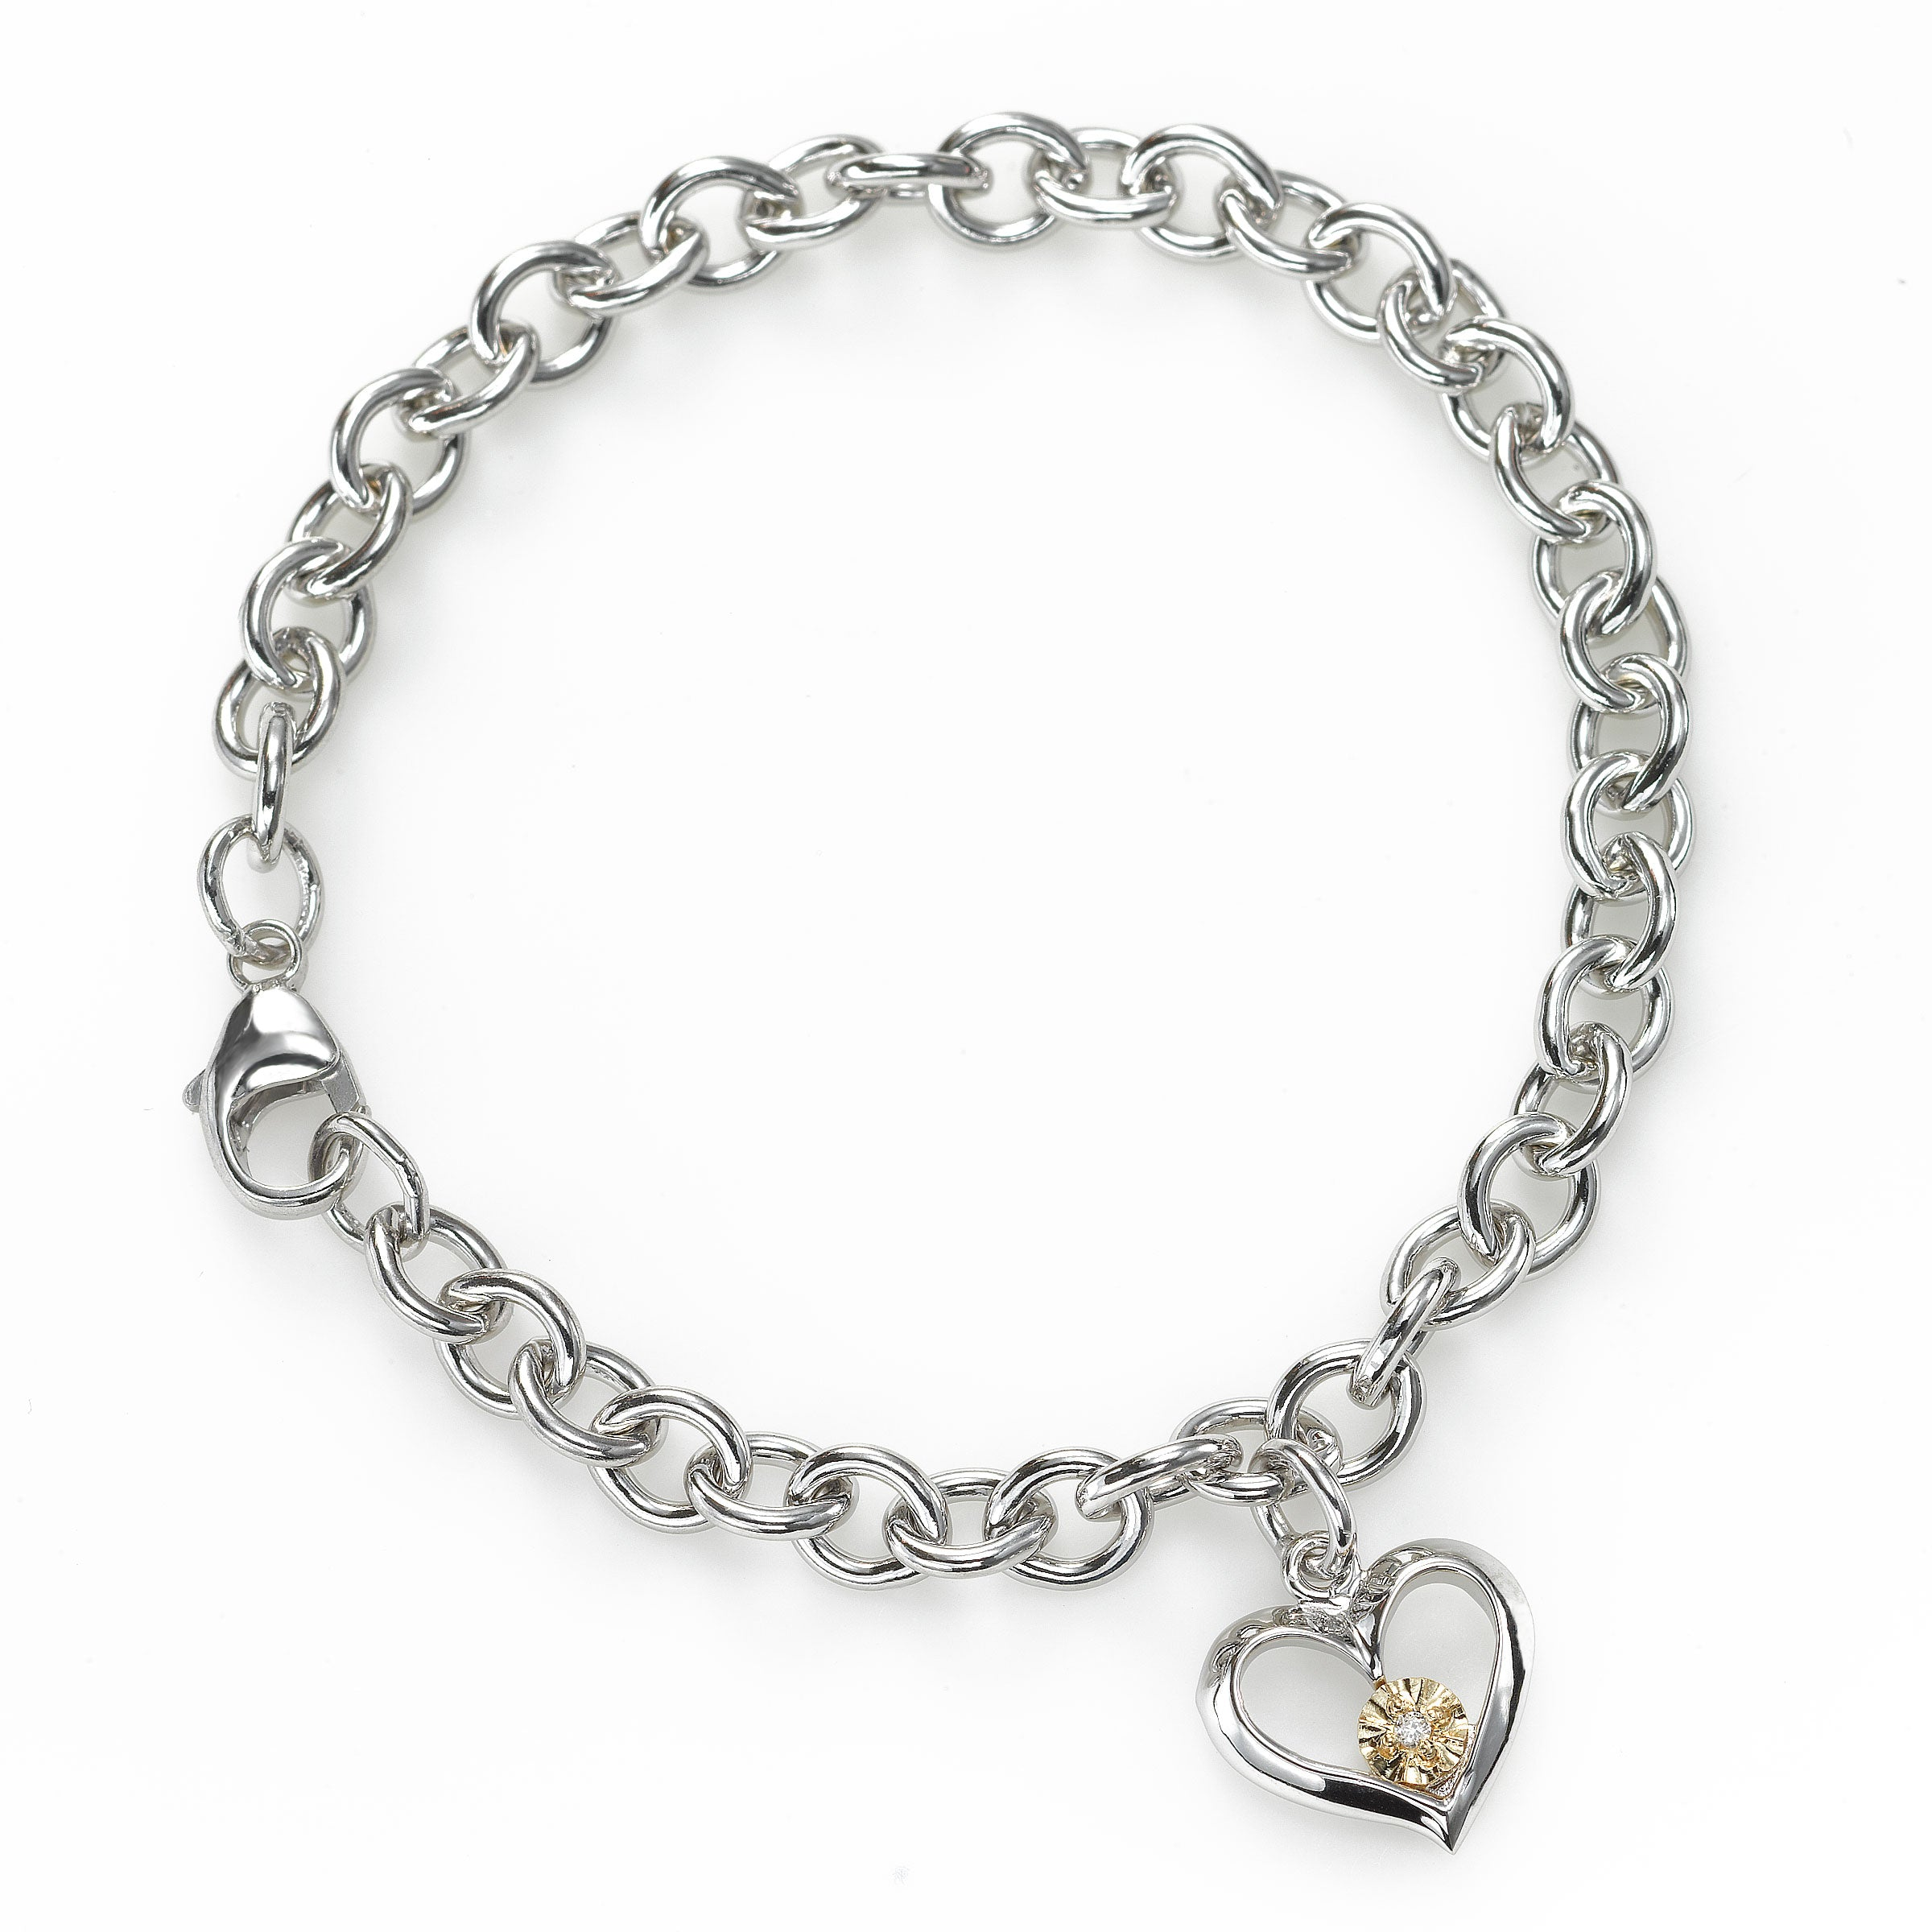 Diamond Tween Size Heart Charm Bracelet, Silver with 14K, 6.75 Inches